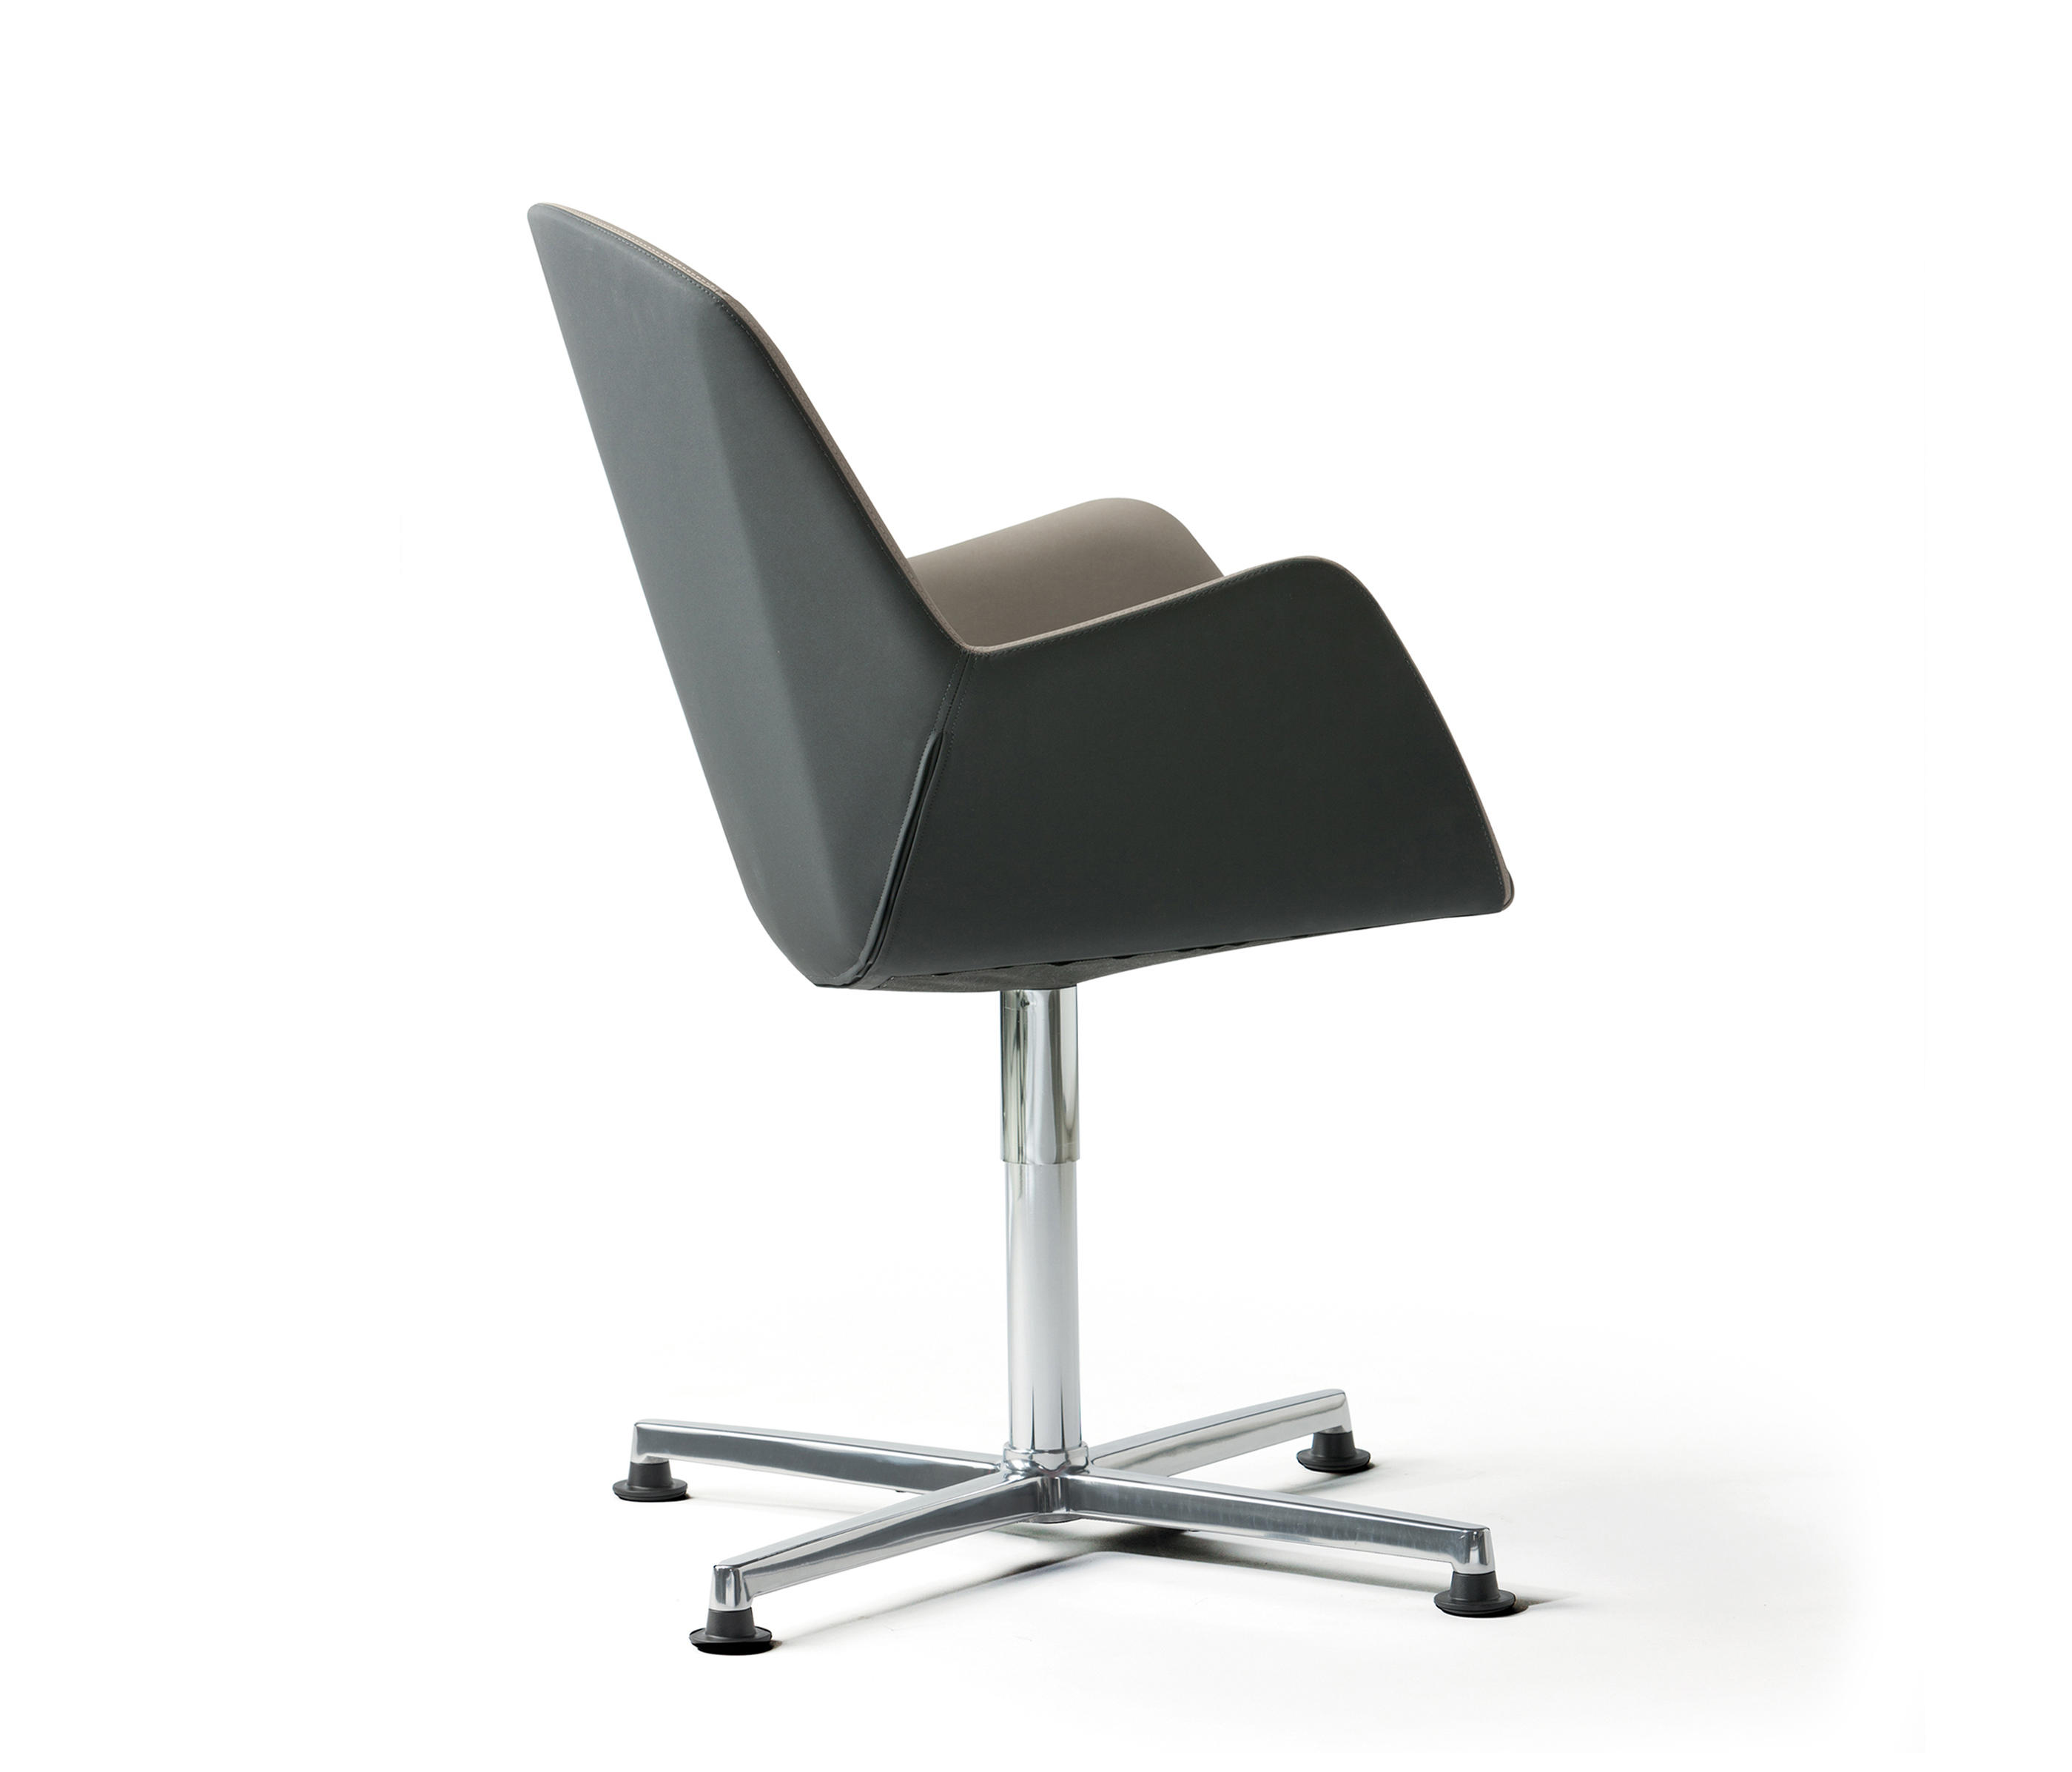 PULSE CONFERENCE Conference chairs from Wiesner Hager